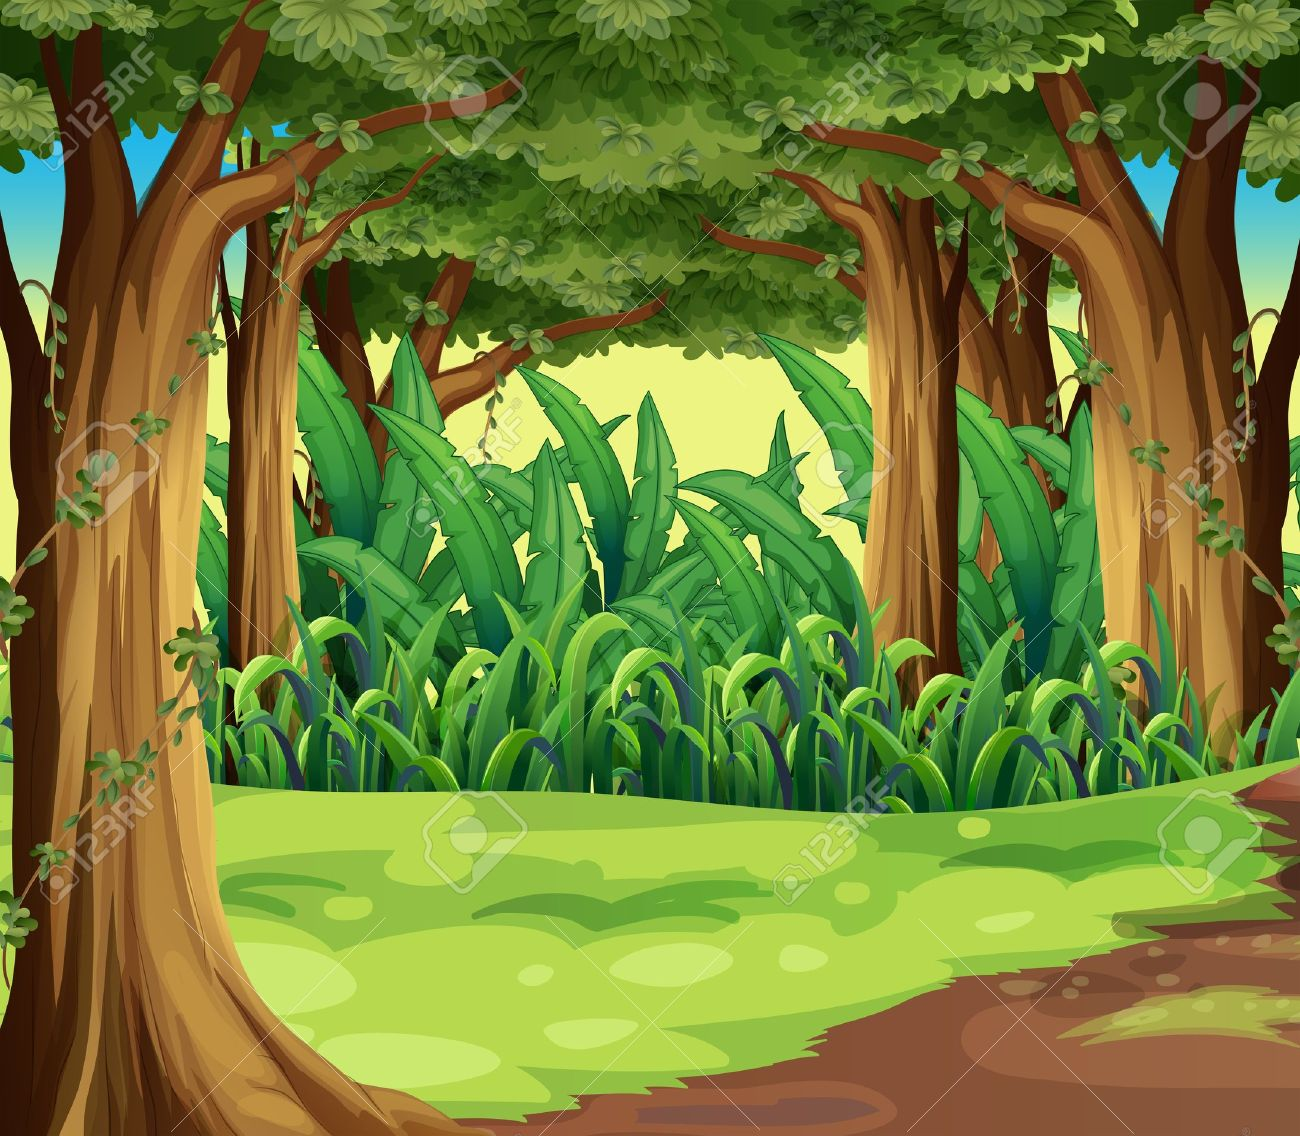 Jungle Trees Stock Illustrations Cliparts And Royalty Free Jungle: https://clipartion.com/free-clipart-2303